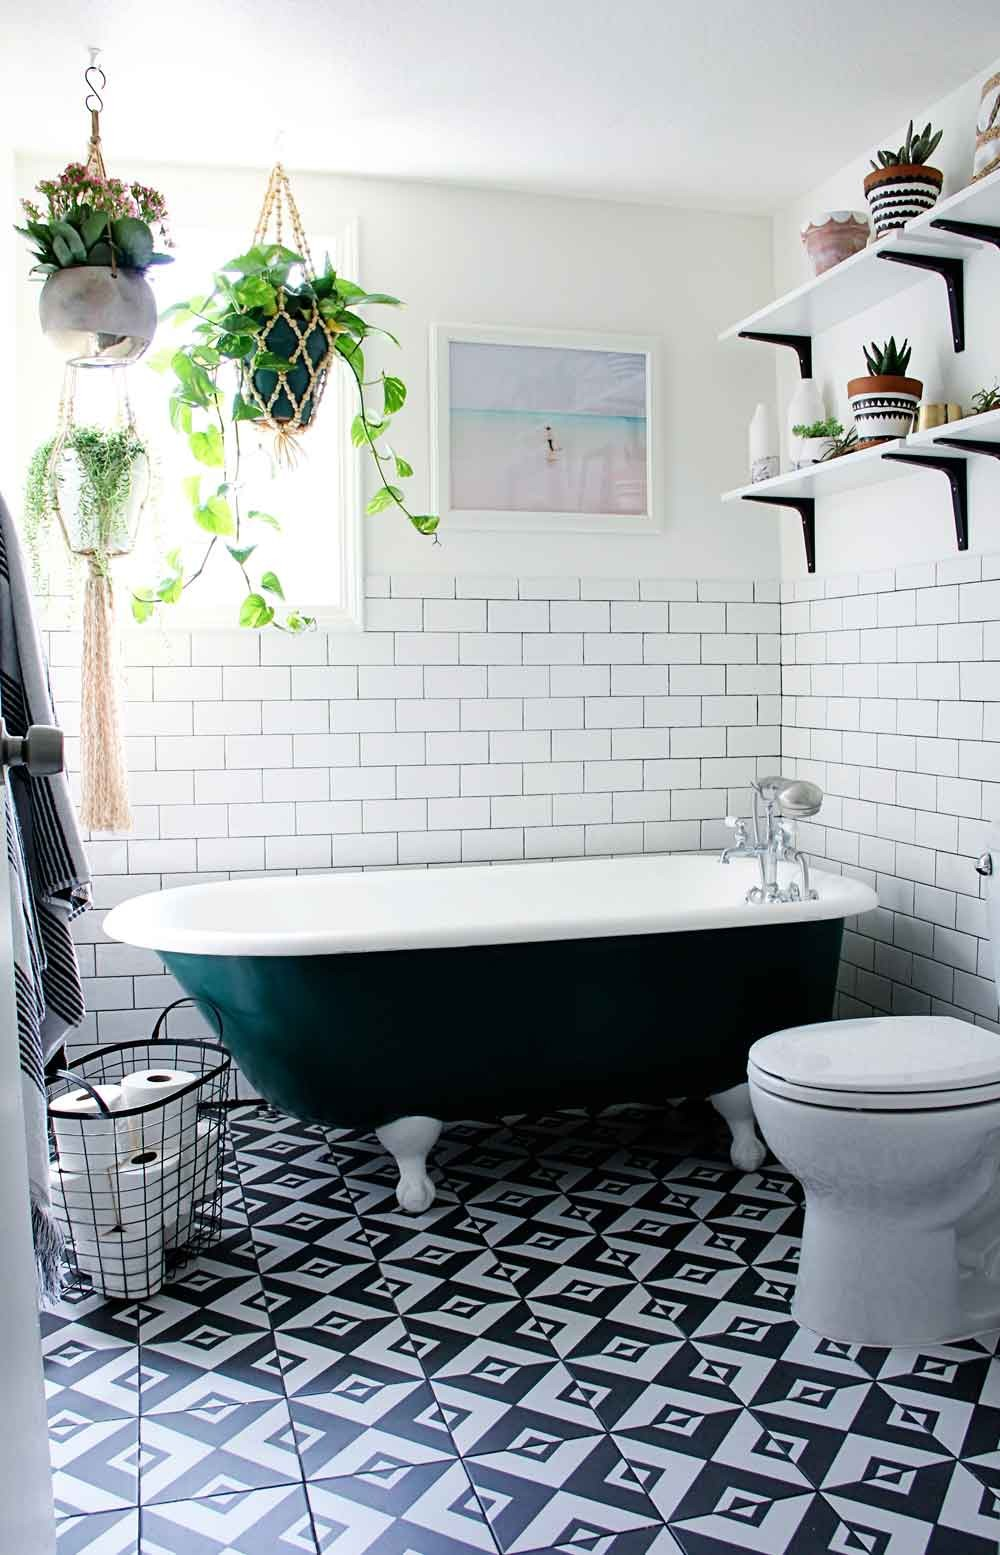 12 Glorious Ways to Use Tiles in a Room – Design*Sponge